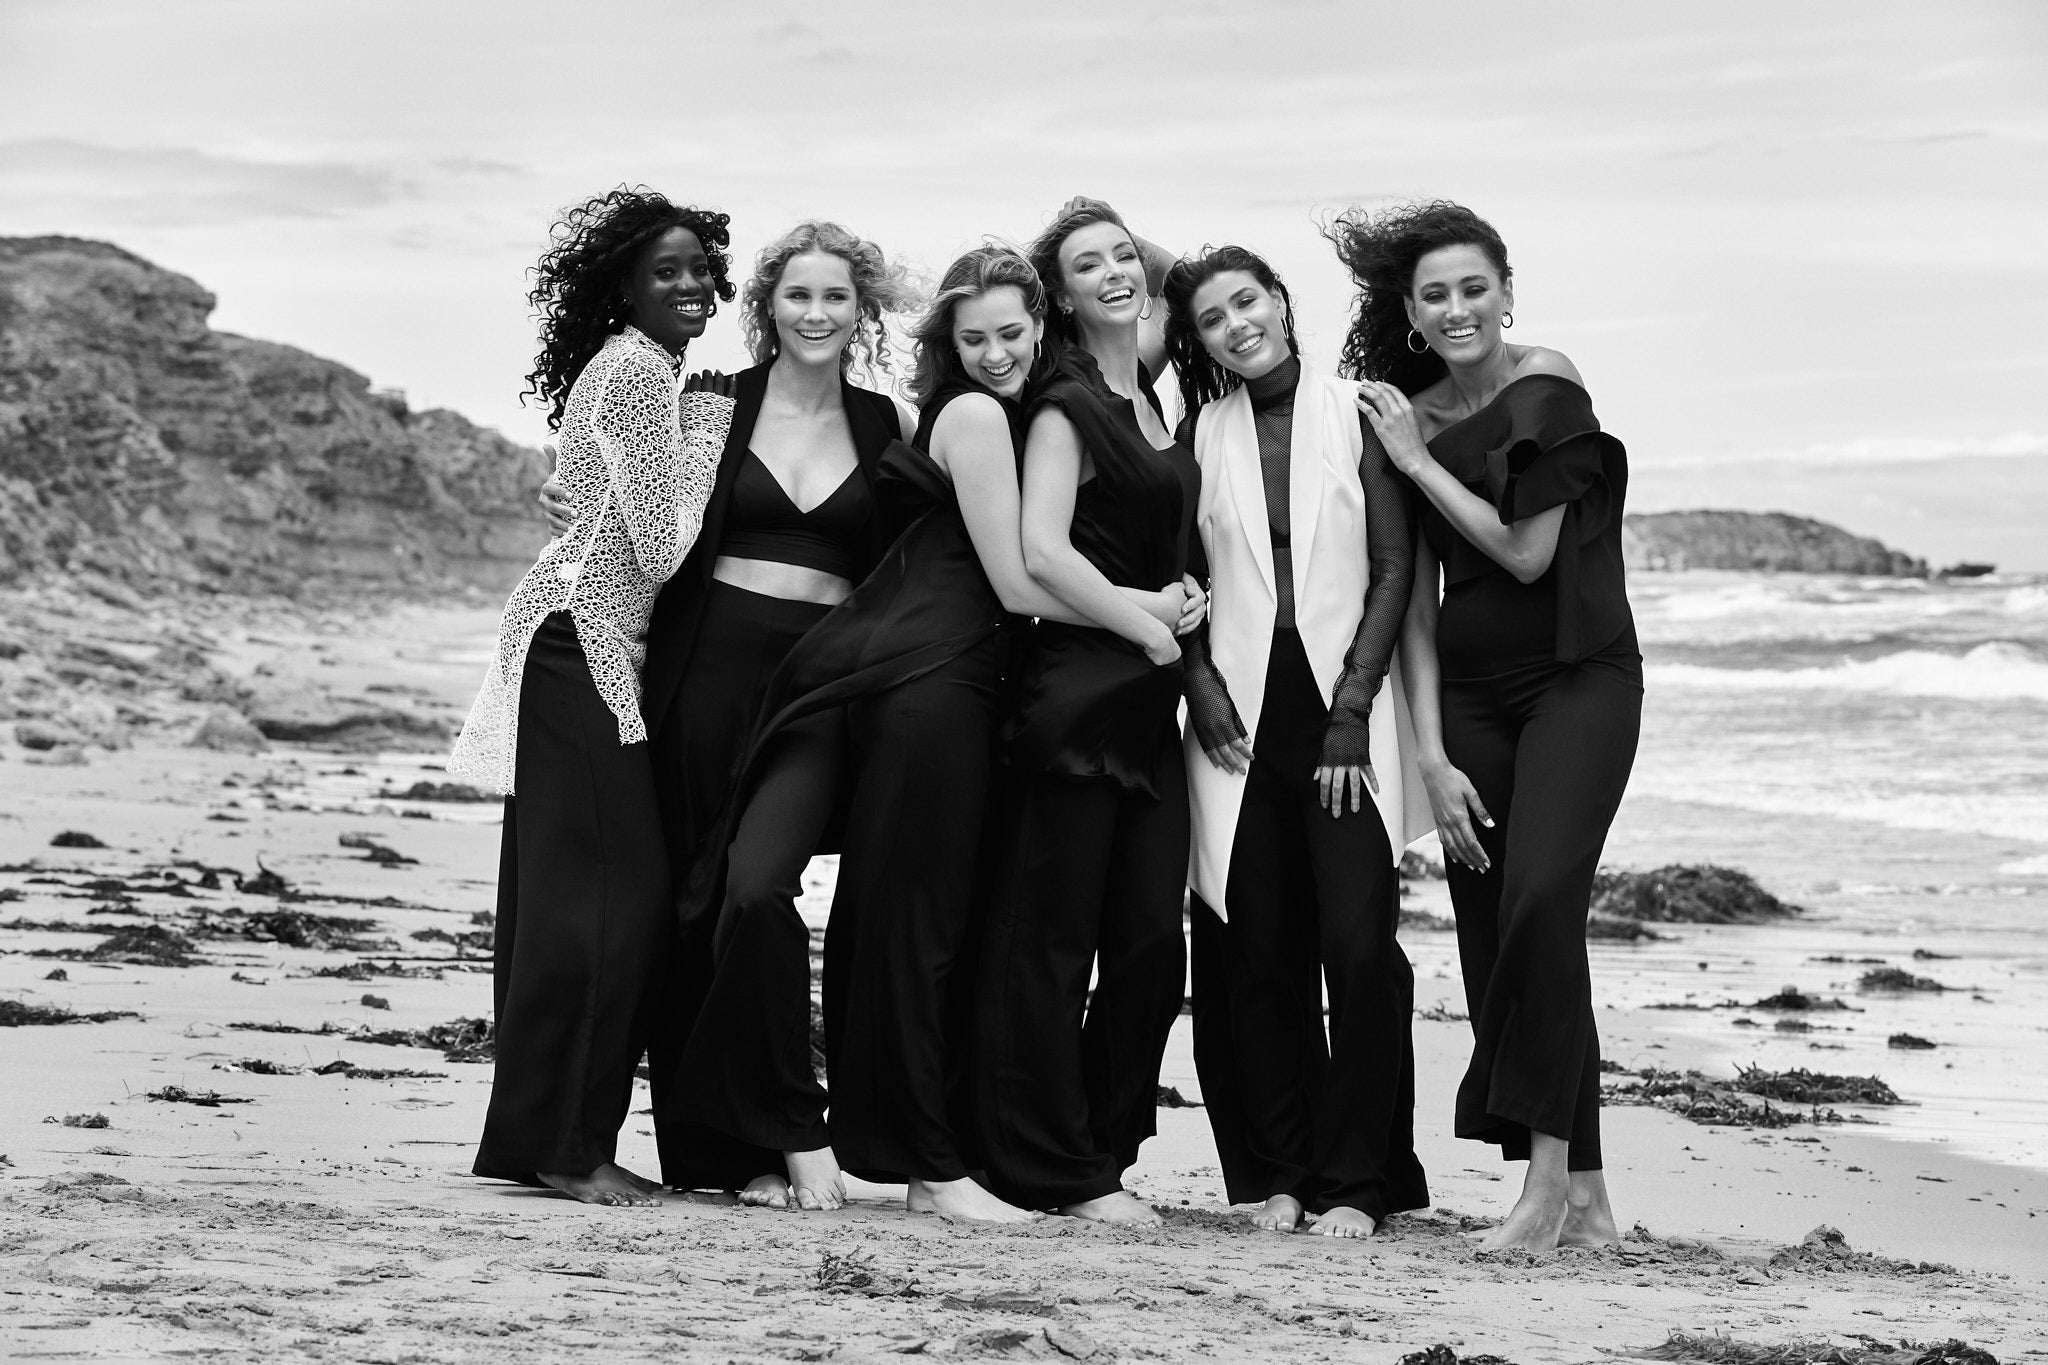 Black and White Models on Beach